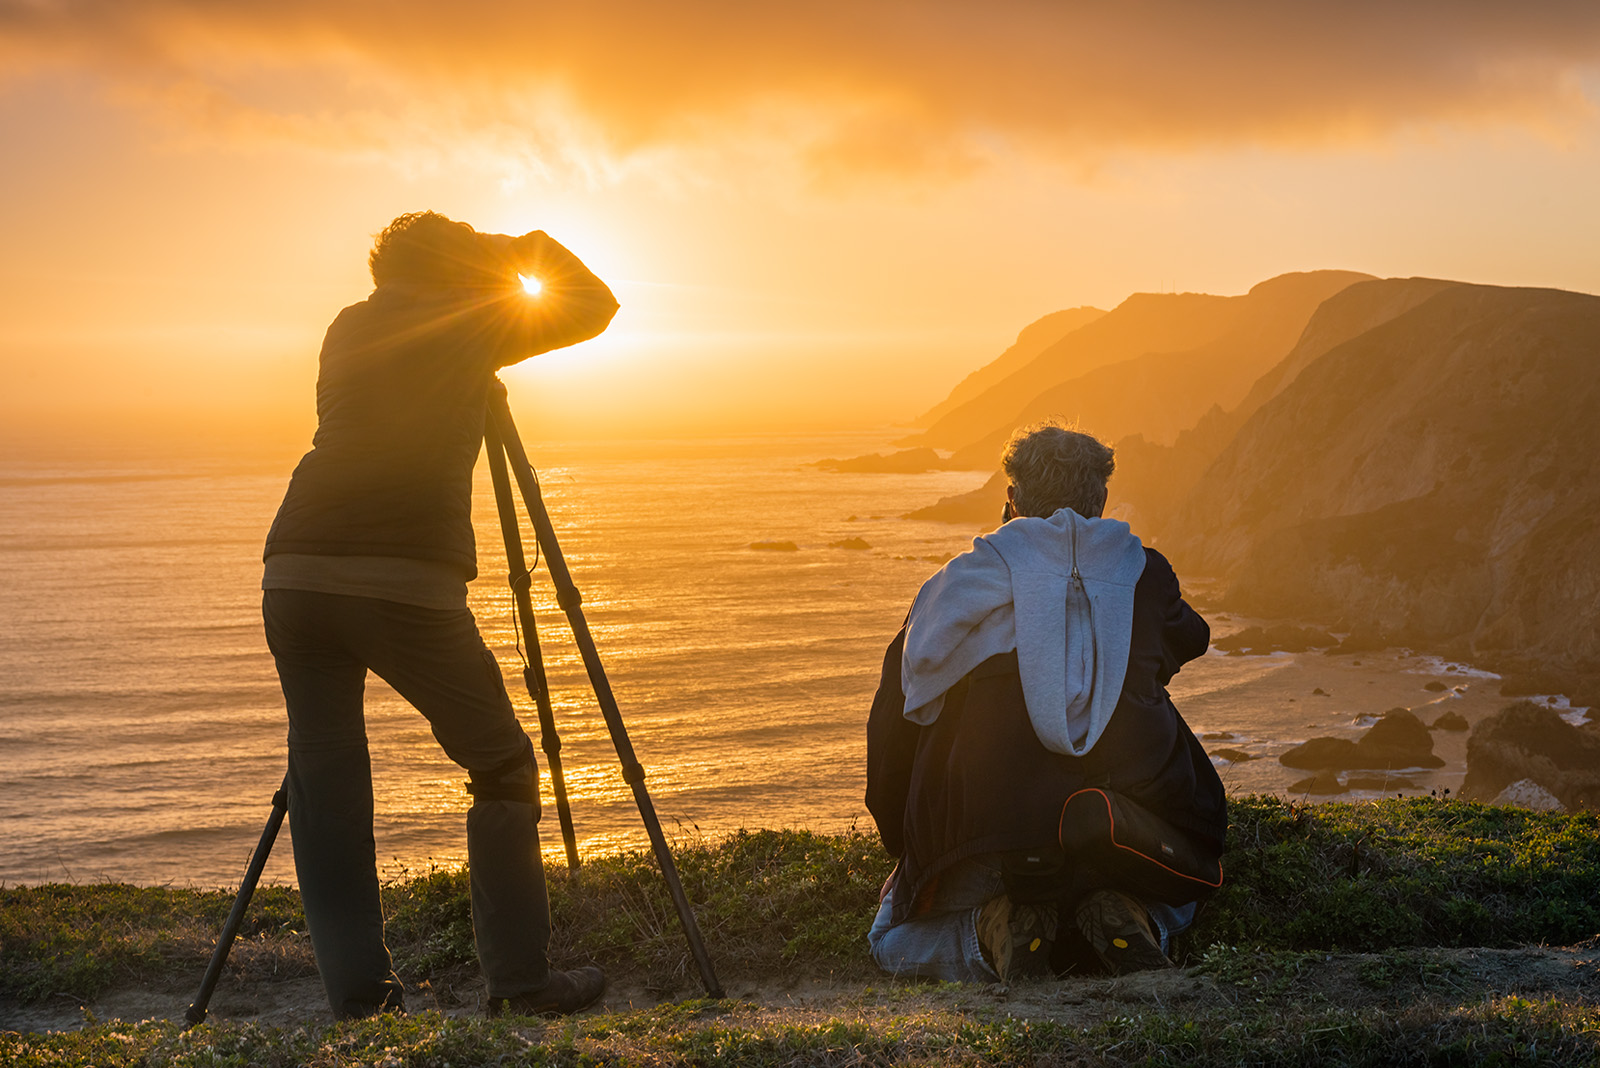 California, Point Reyes, Point Reyes National Seashore, Marin County, coast, coastline, coastal, people, person, photographer, photography, two, photographers, shooting, taking pictures, sunset, ocean, photo